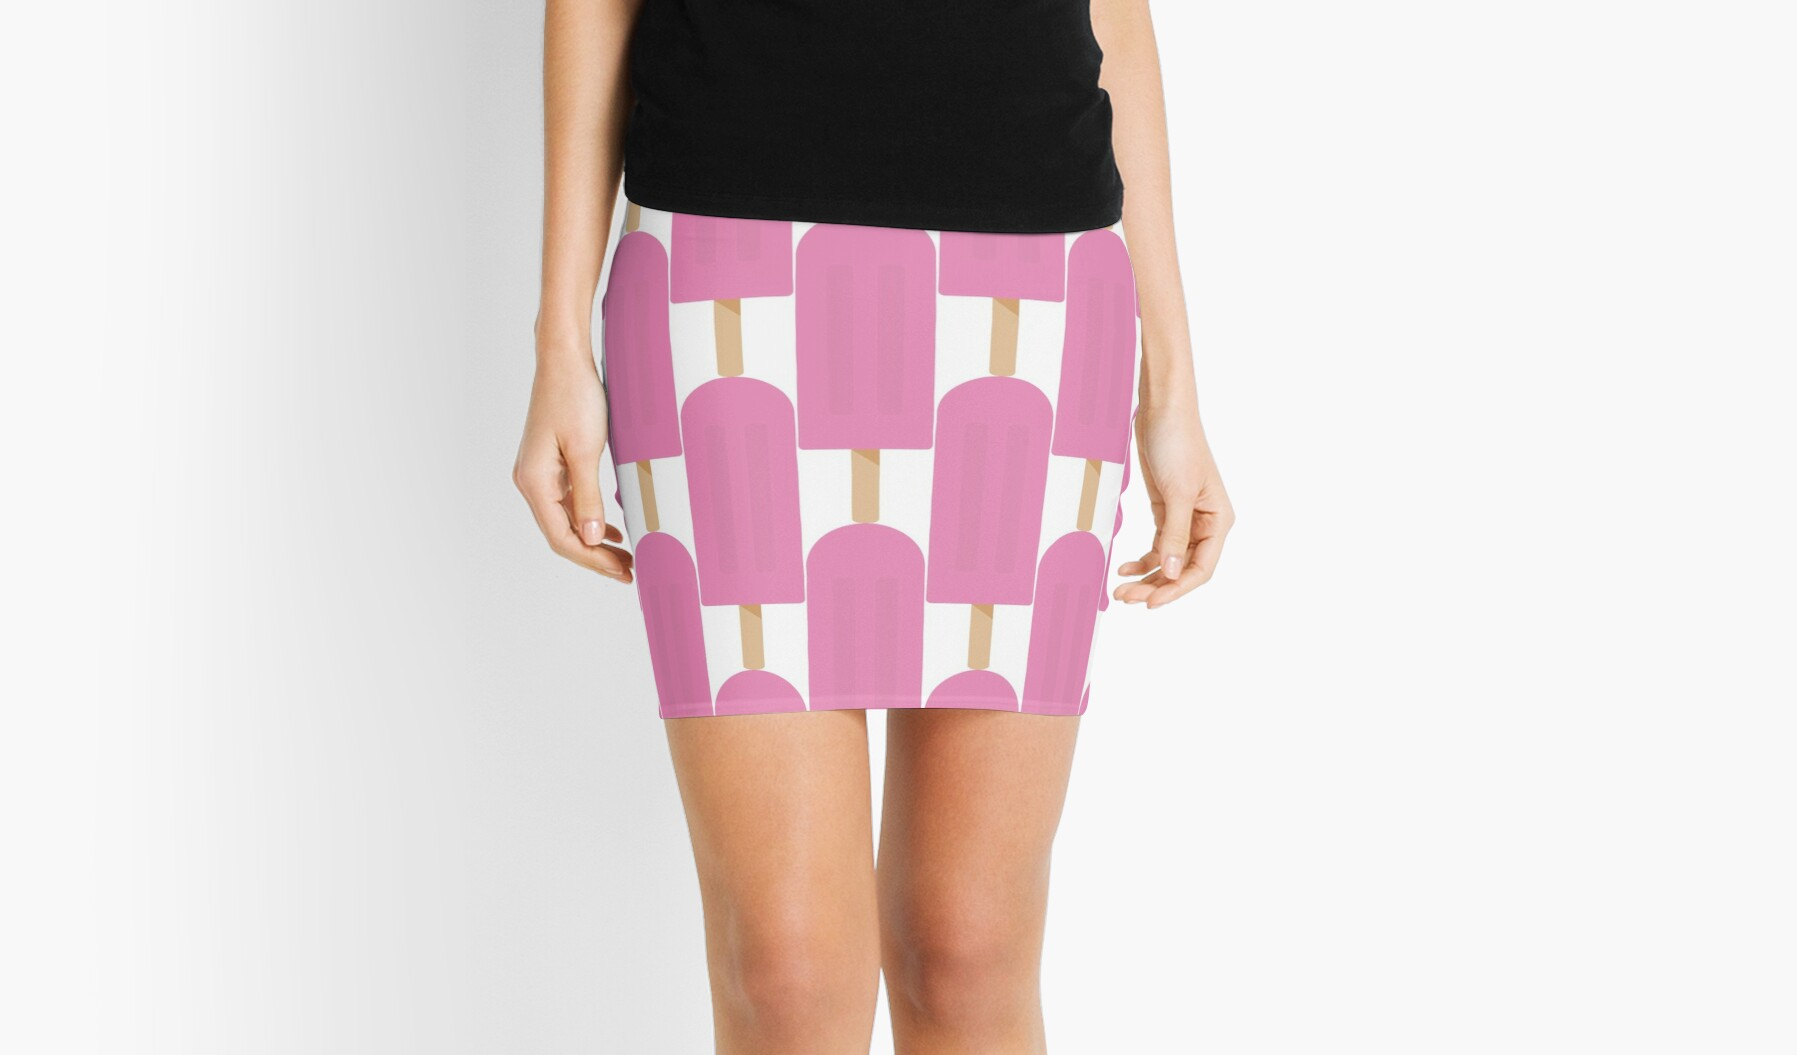 An Ice Cold Speedy From Way Back Mini Skirts By Jeronie Redbubble Maroon